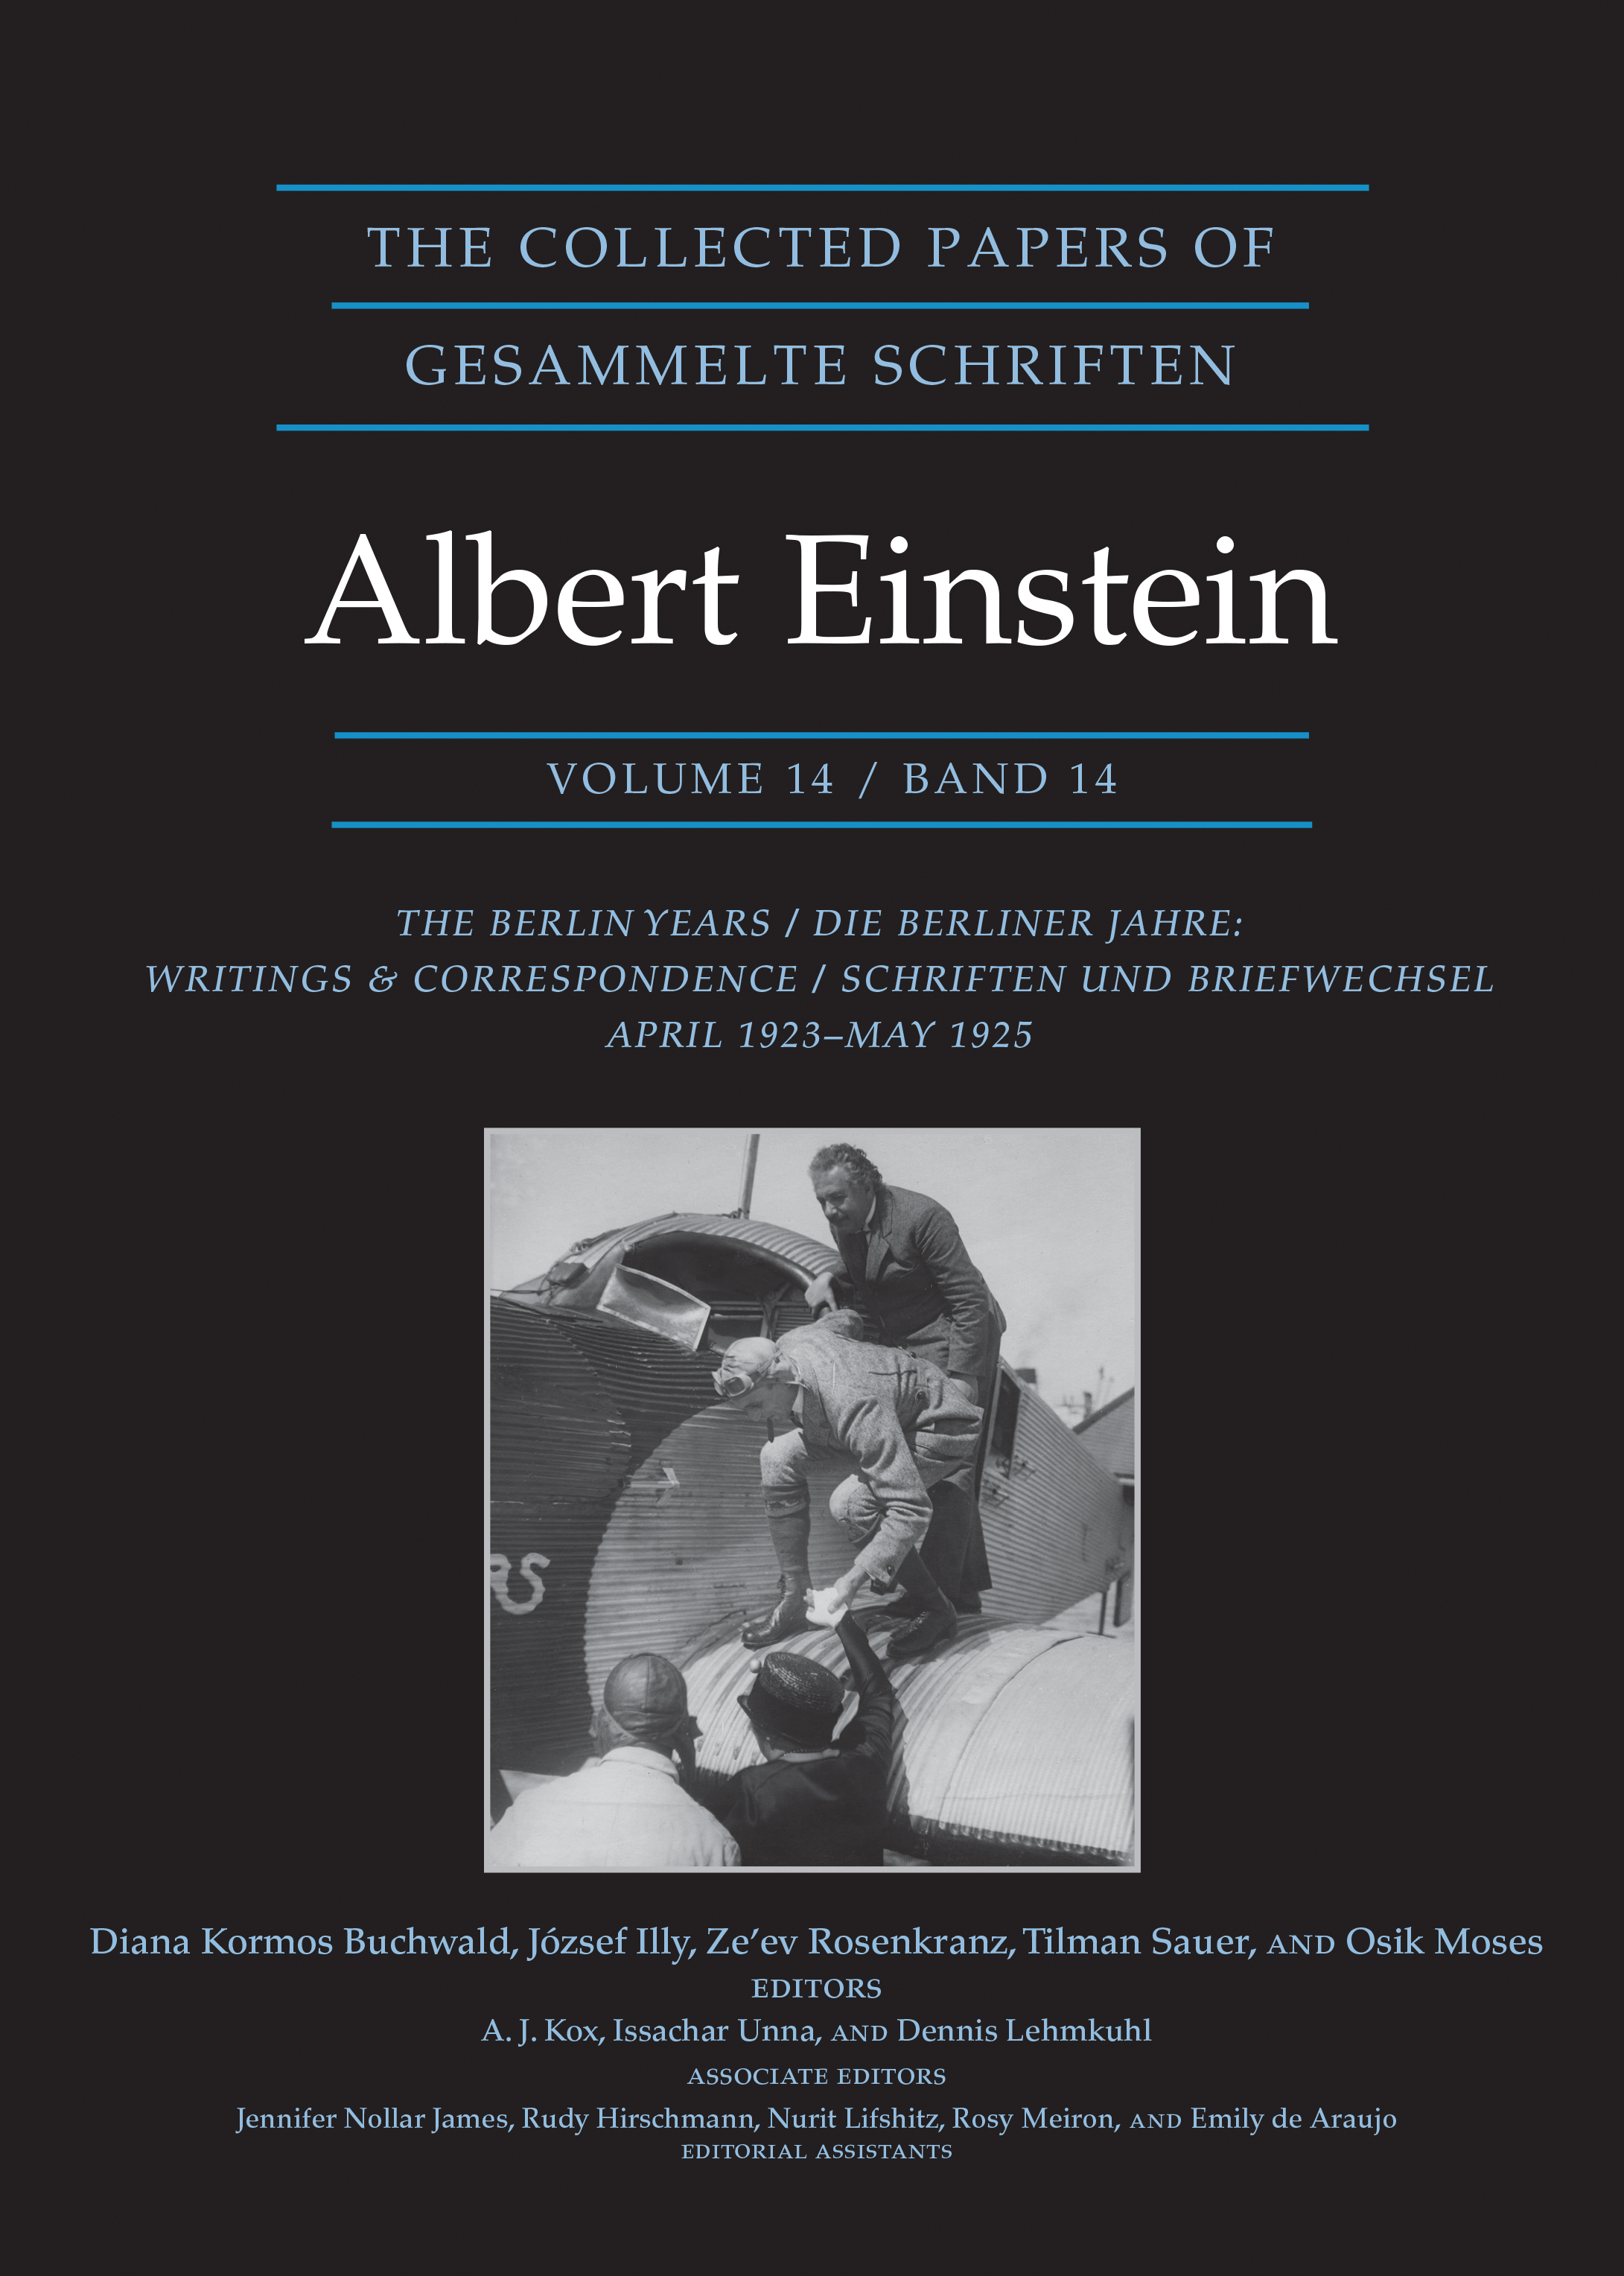 bookjacket: The Collected Papers of Albert Einstein, Volume 14